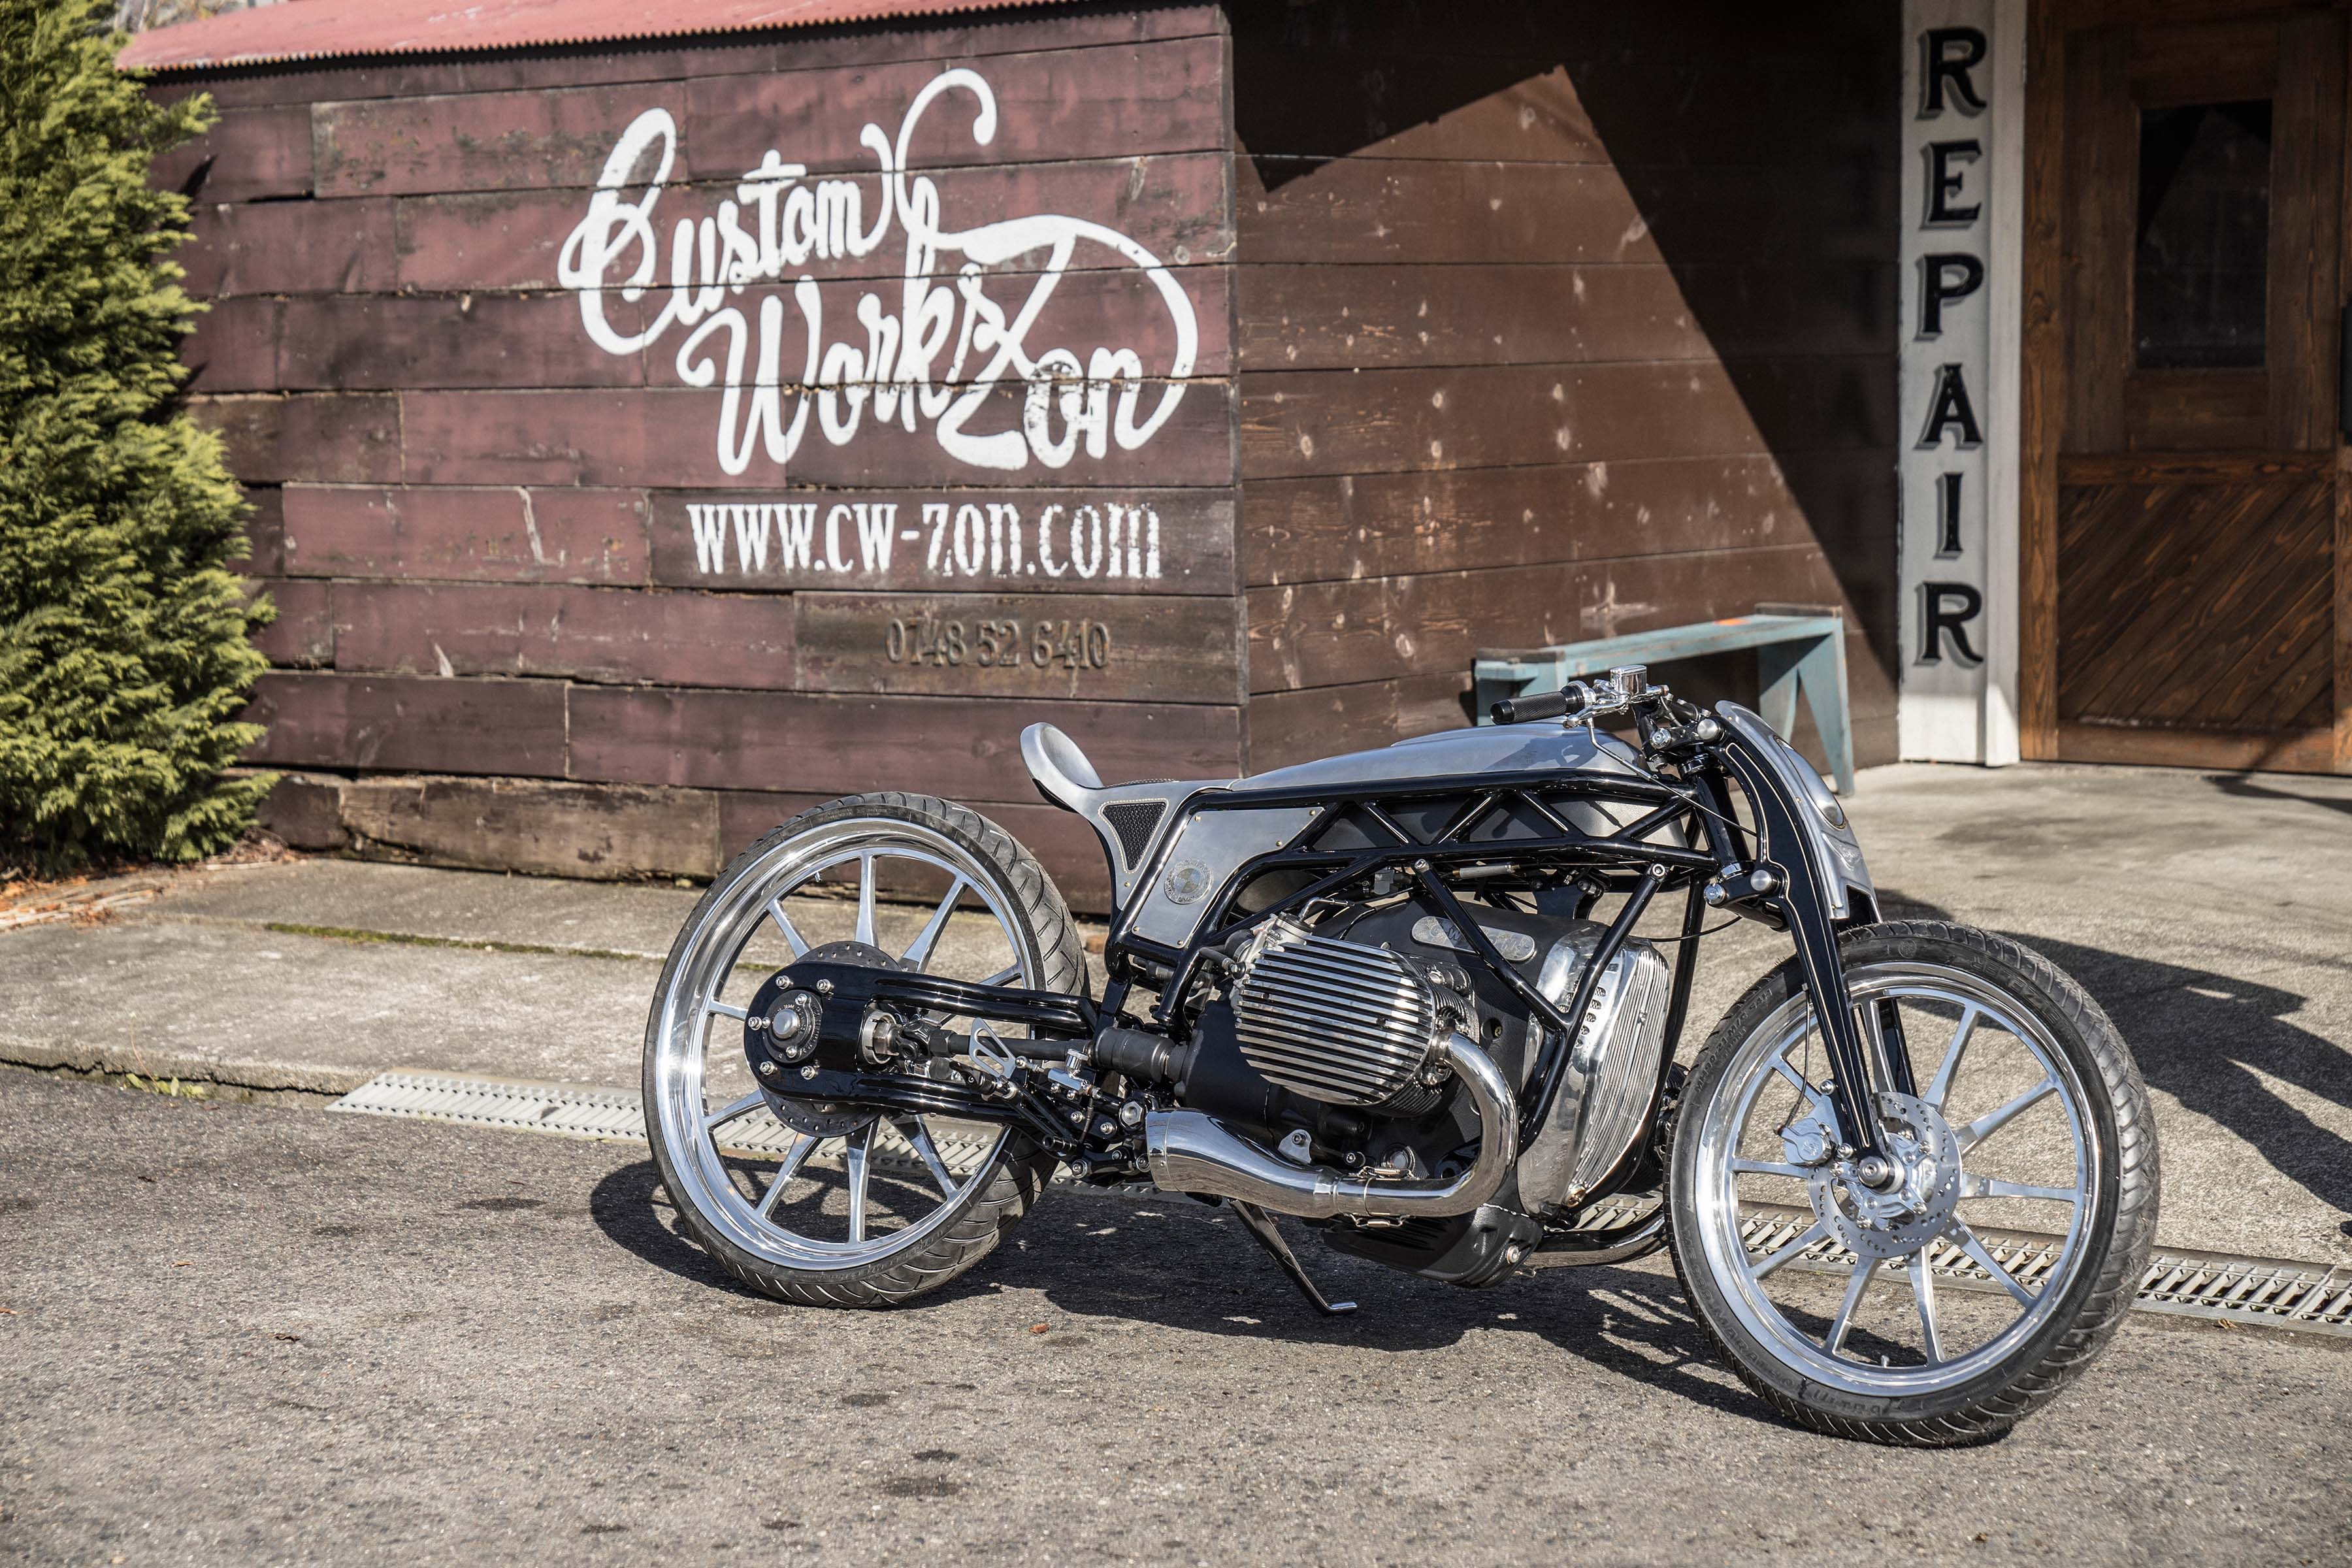 Custom-Works-Zon-BMW-1800cc-engine-prototype-03